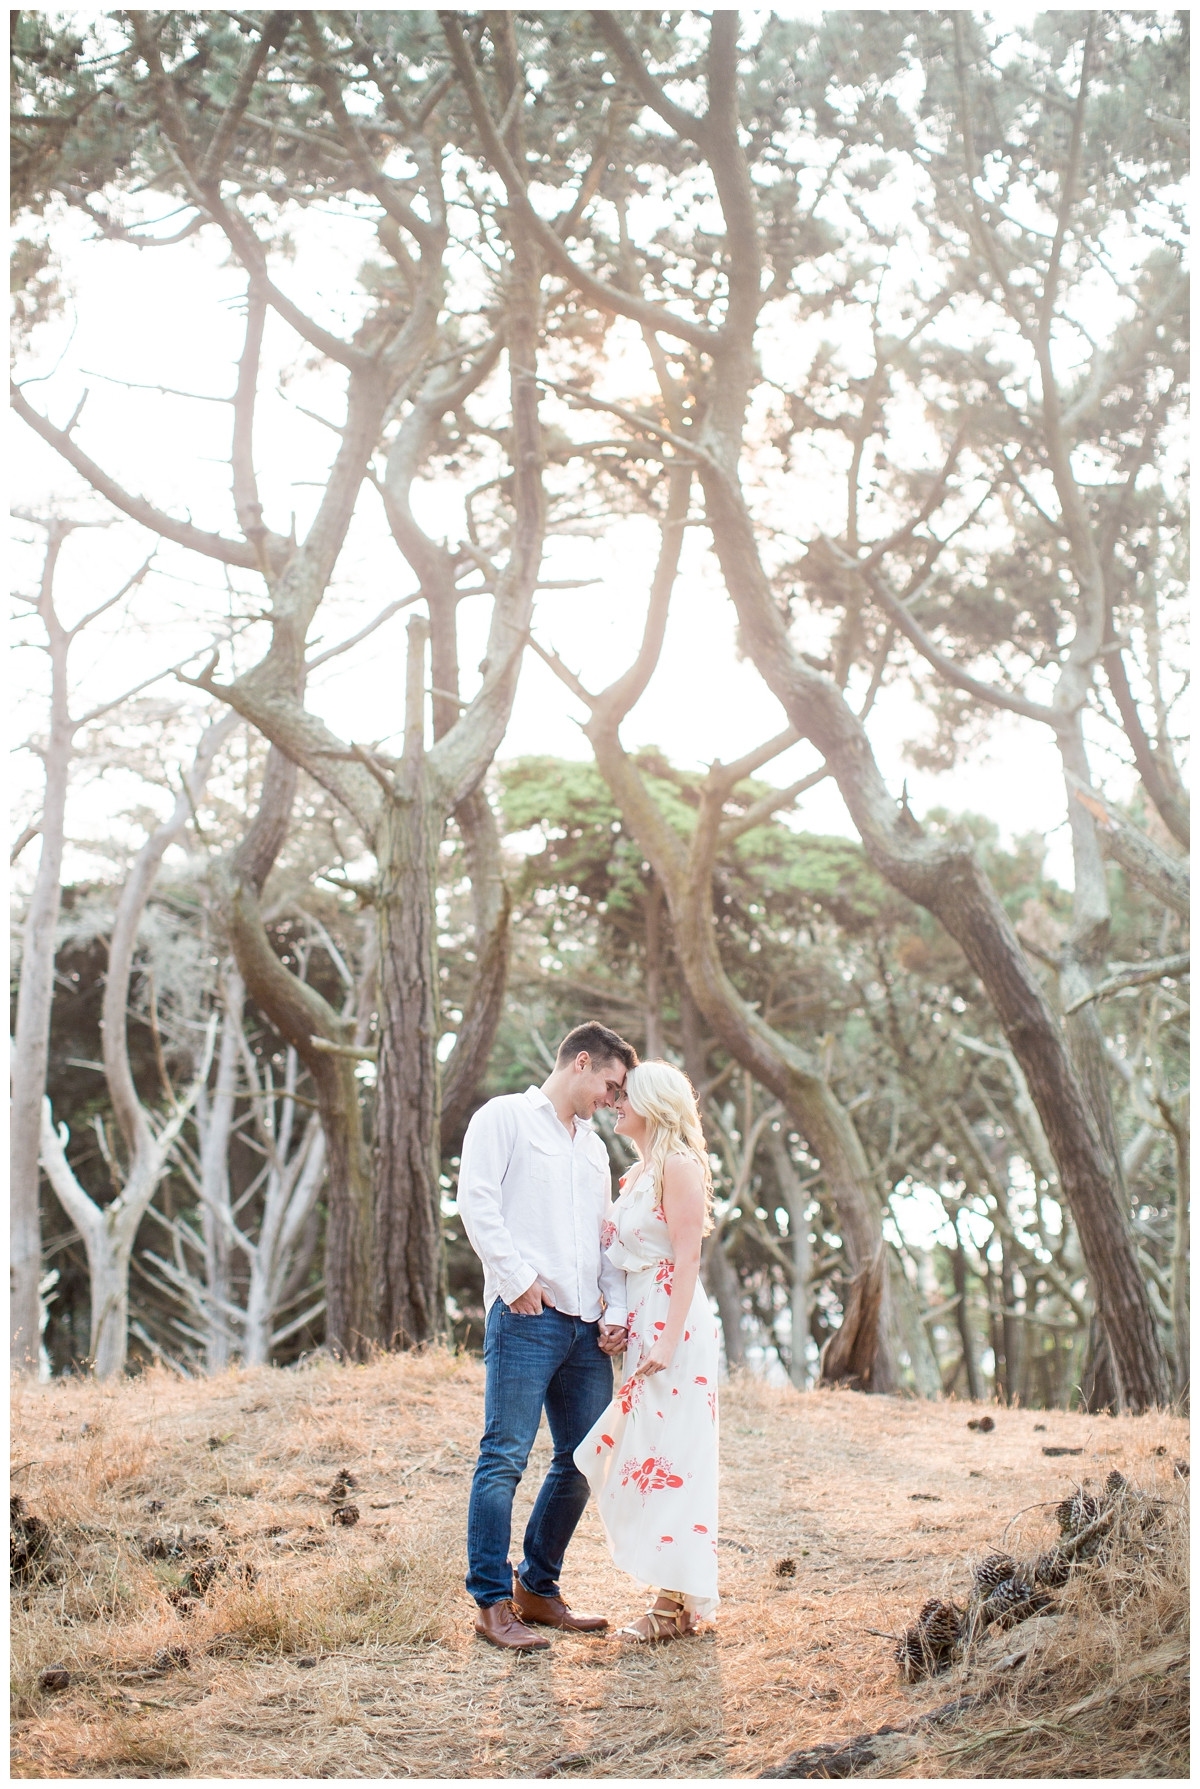 Baker-Beach-San-Francisco-Engagement-Photos_6375.jpg